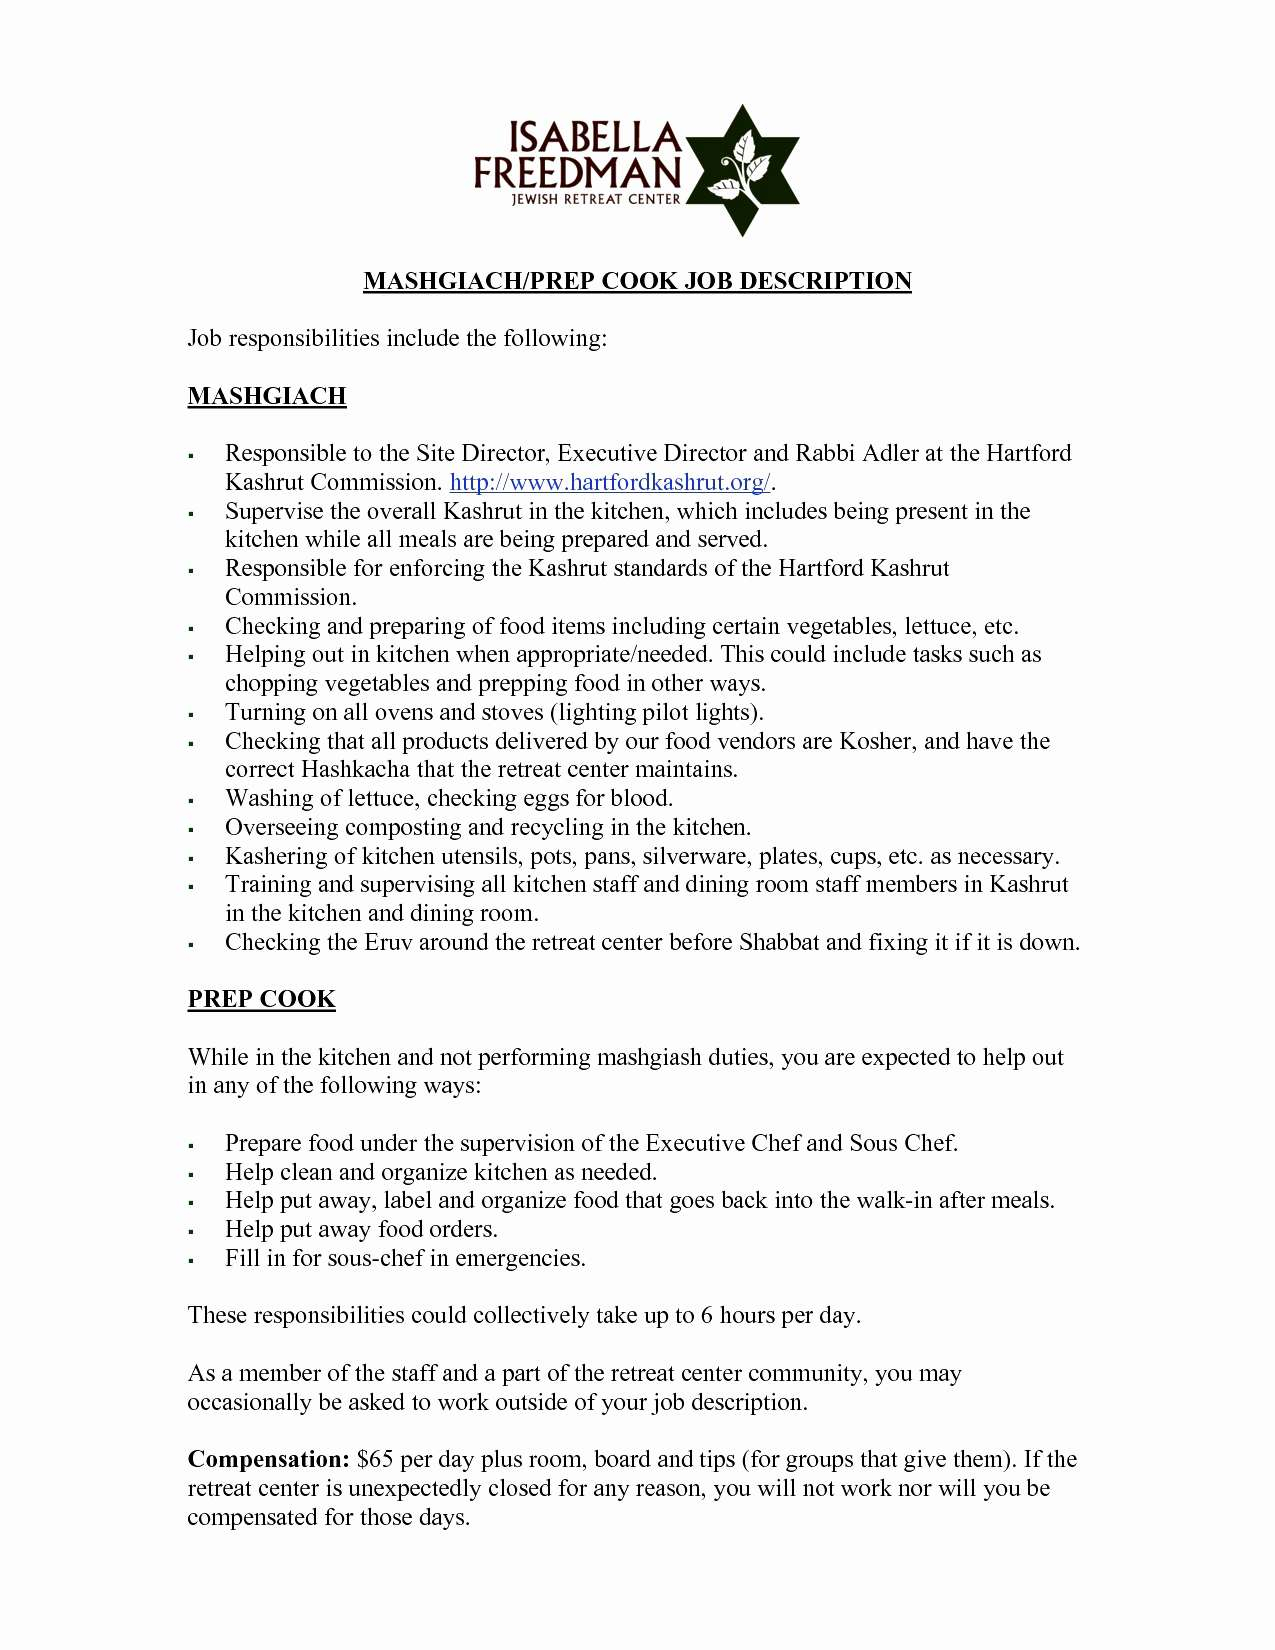 How to Create A Cover Letter Template - How to Make Resume for Freshers Elegant Resume and Cover Letter